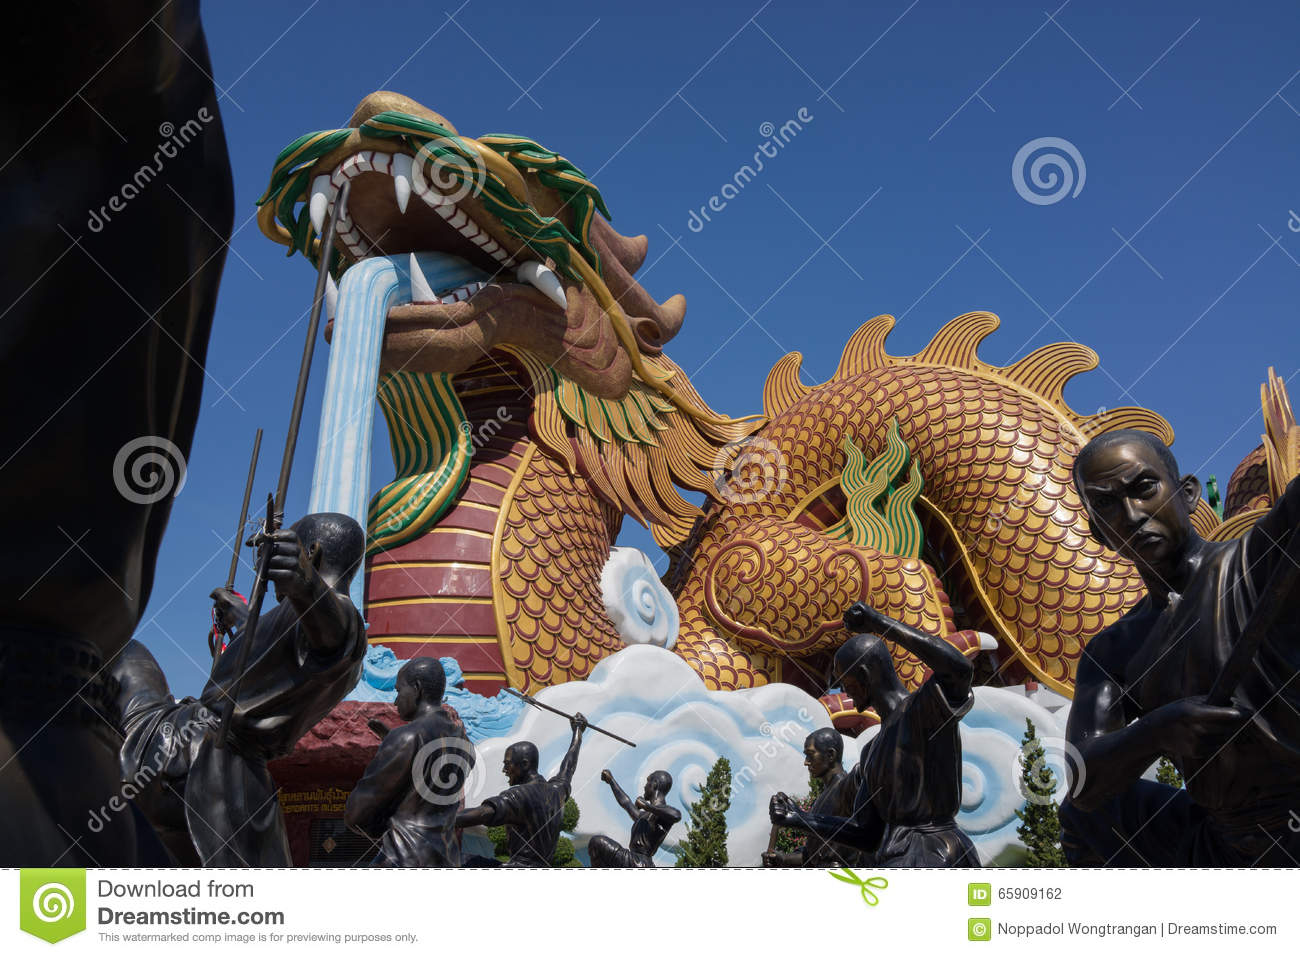 Giant Dragon Statue Statues Of Giant Chinese Dragon And Shaolin Monks In Actions